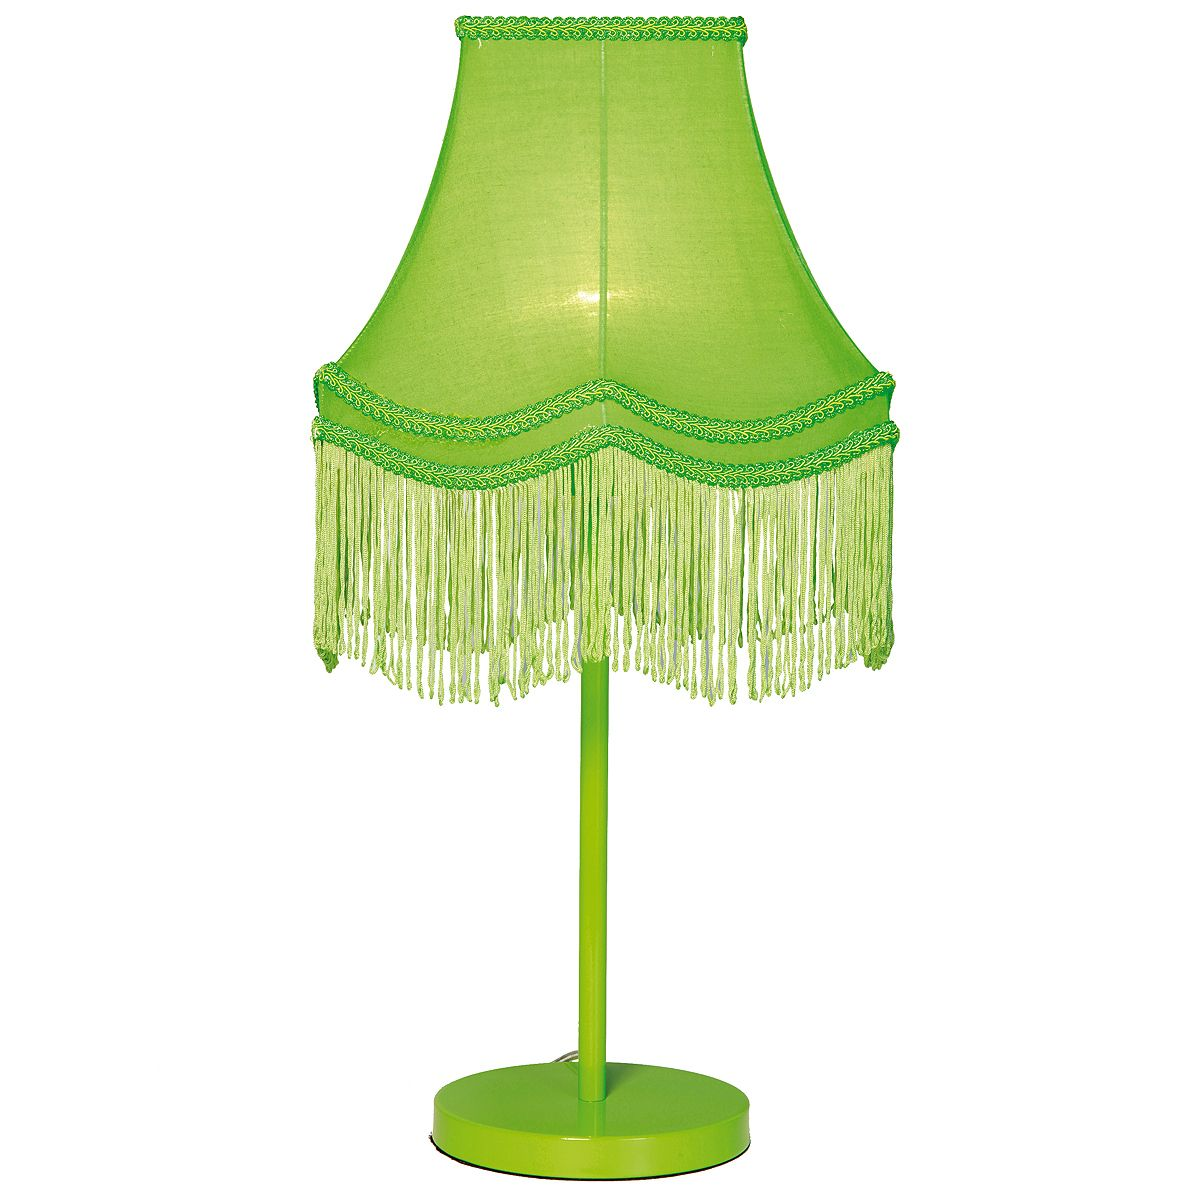 Captivating Fluoro Fringe Lime Green Table Lamp